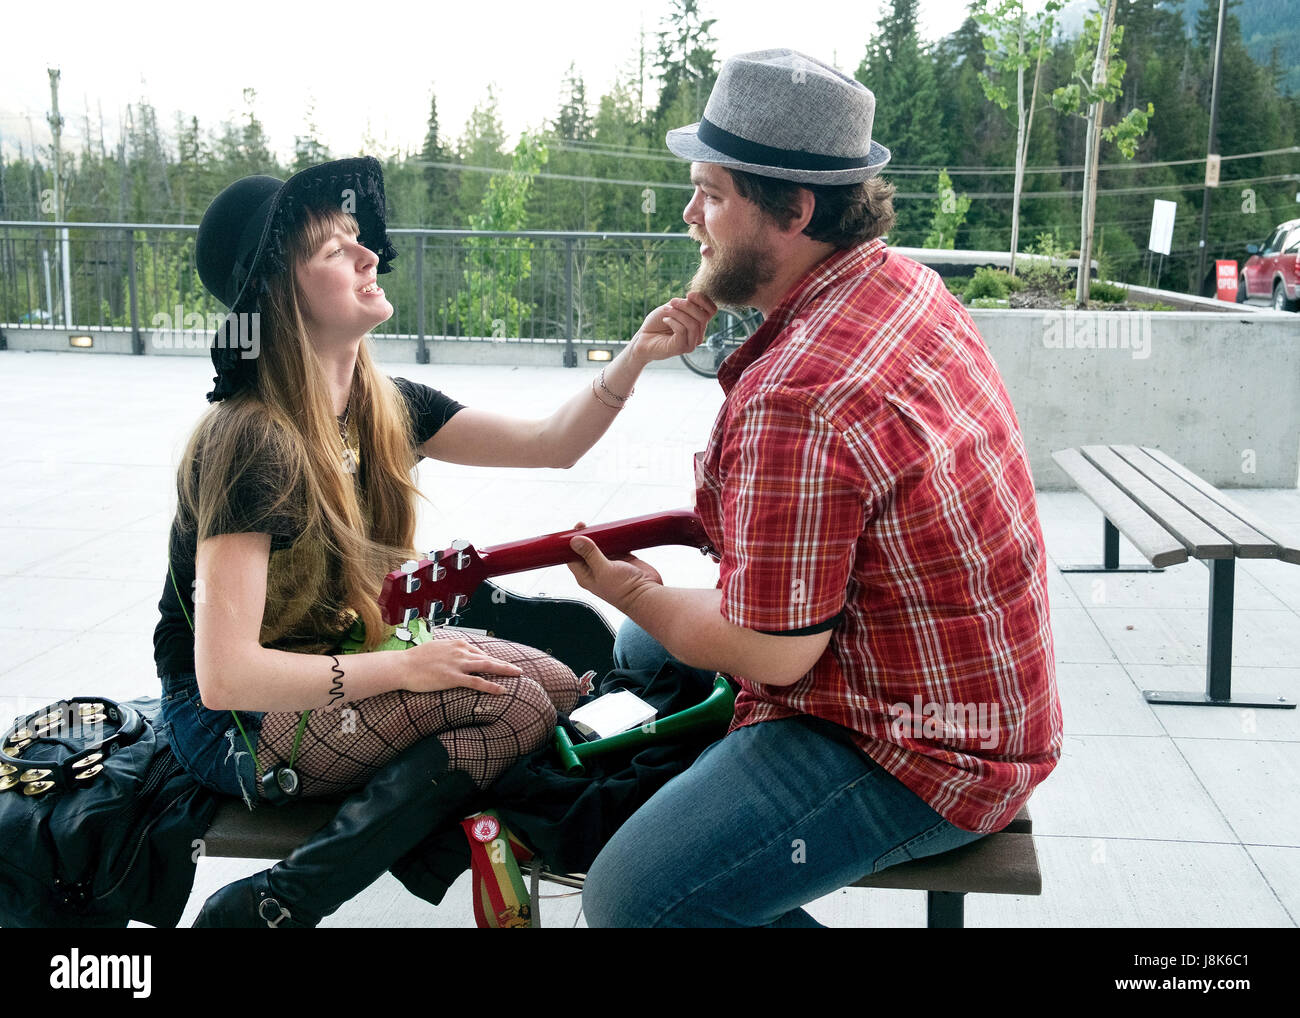 Street musicians sing a duet in front of a shopping centre.  Whistler BC, Canada - Stock Image